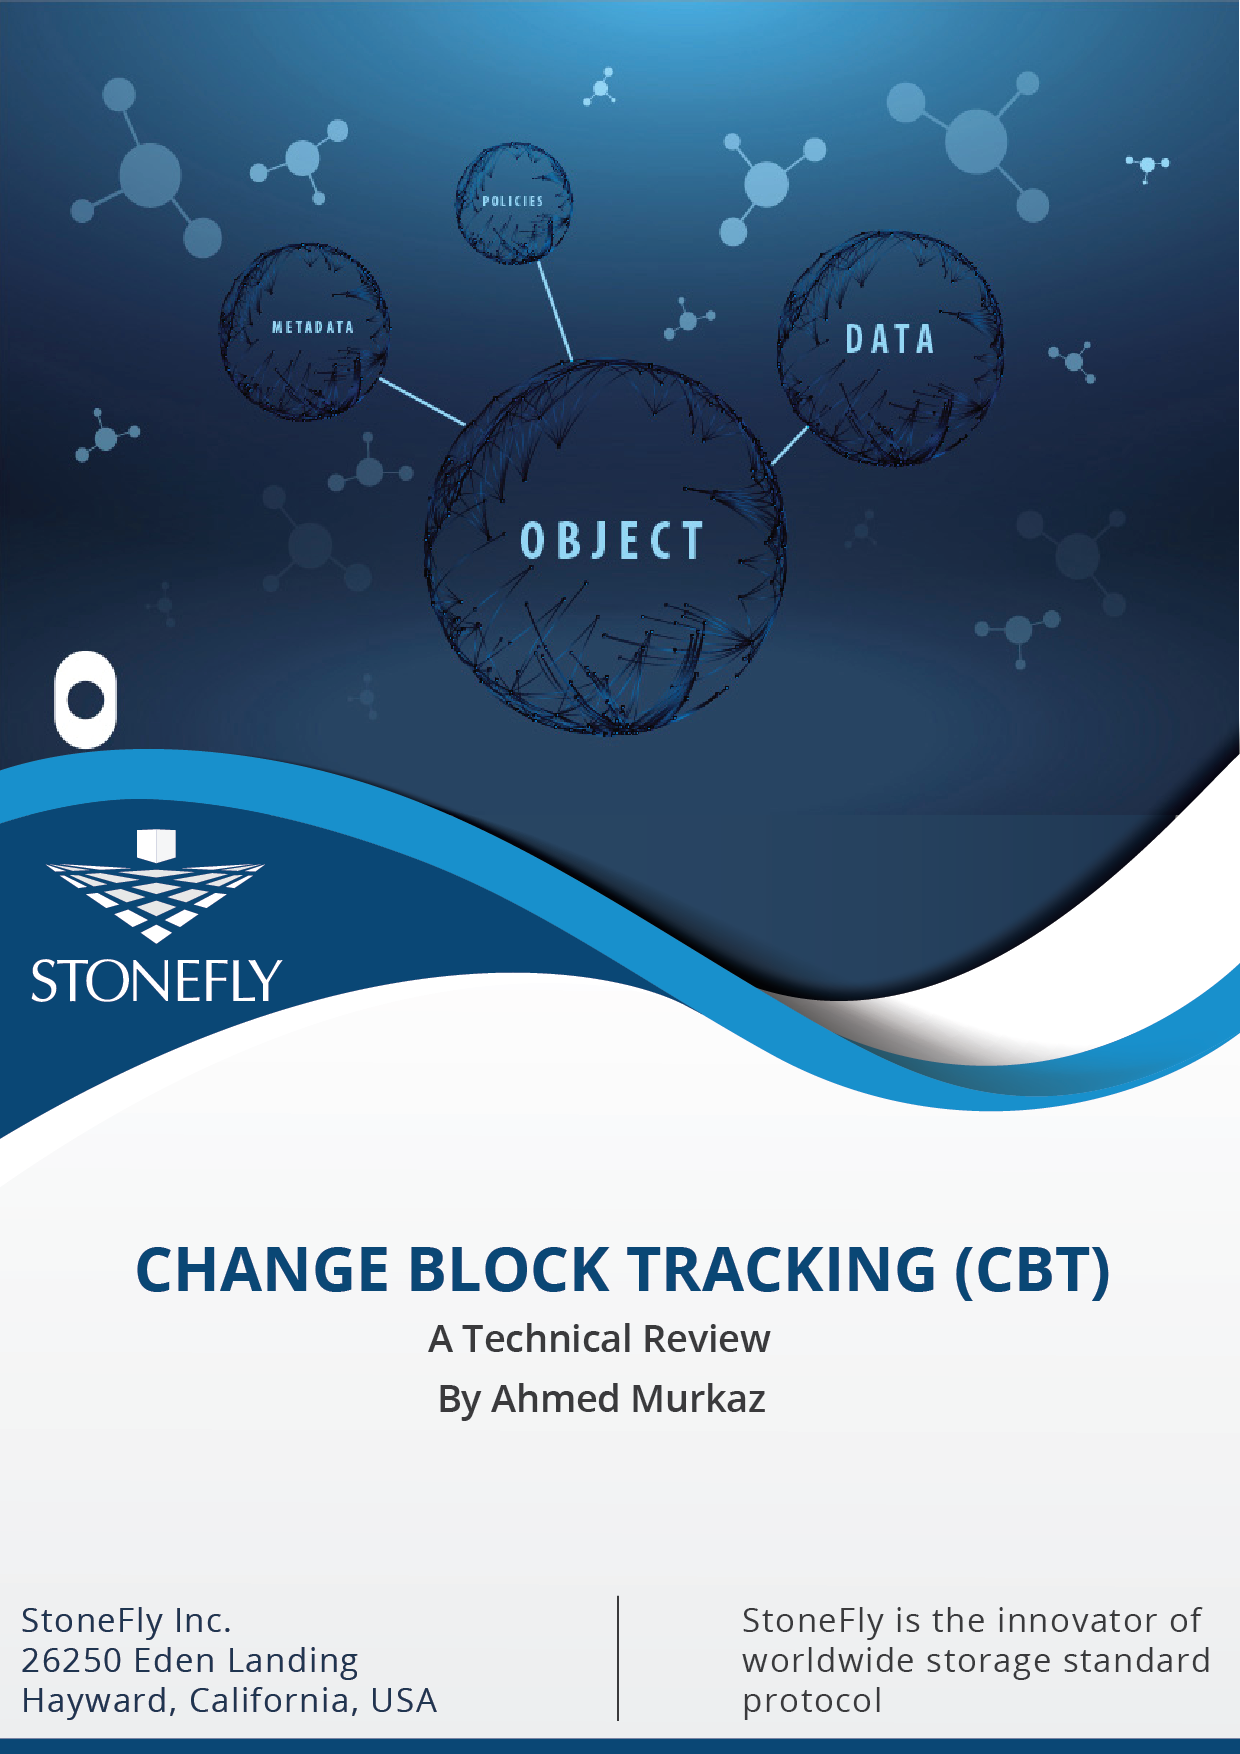 CHANGE BLOCK TRACKING (CBT) 2